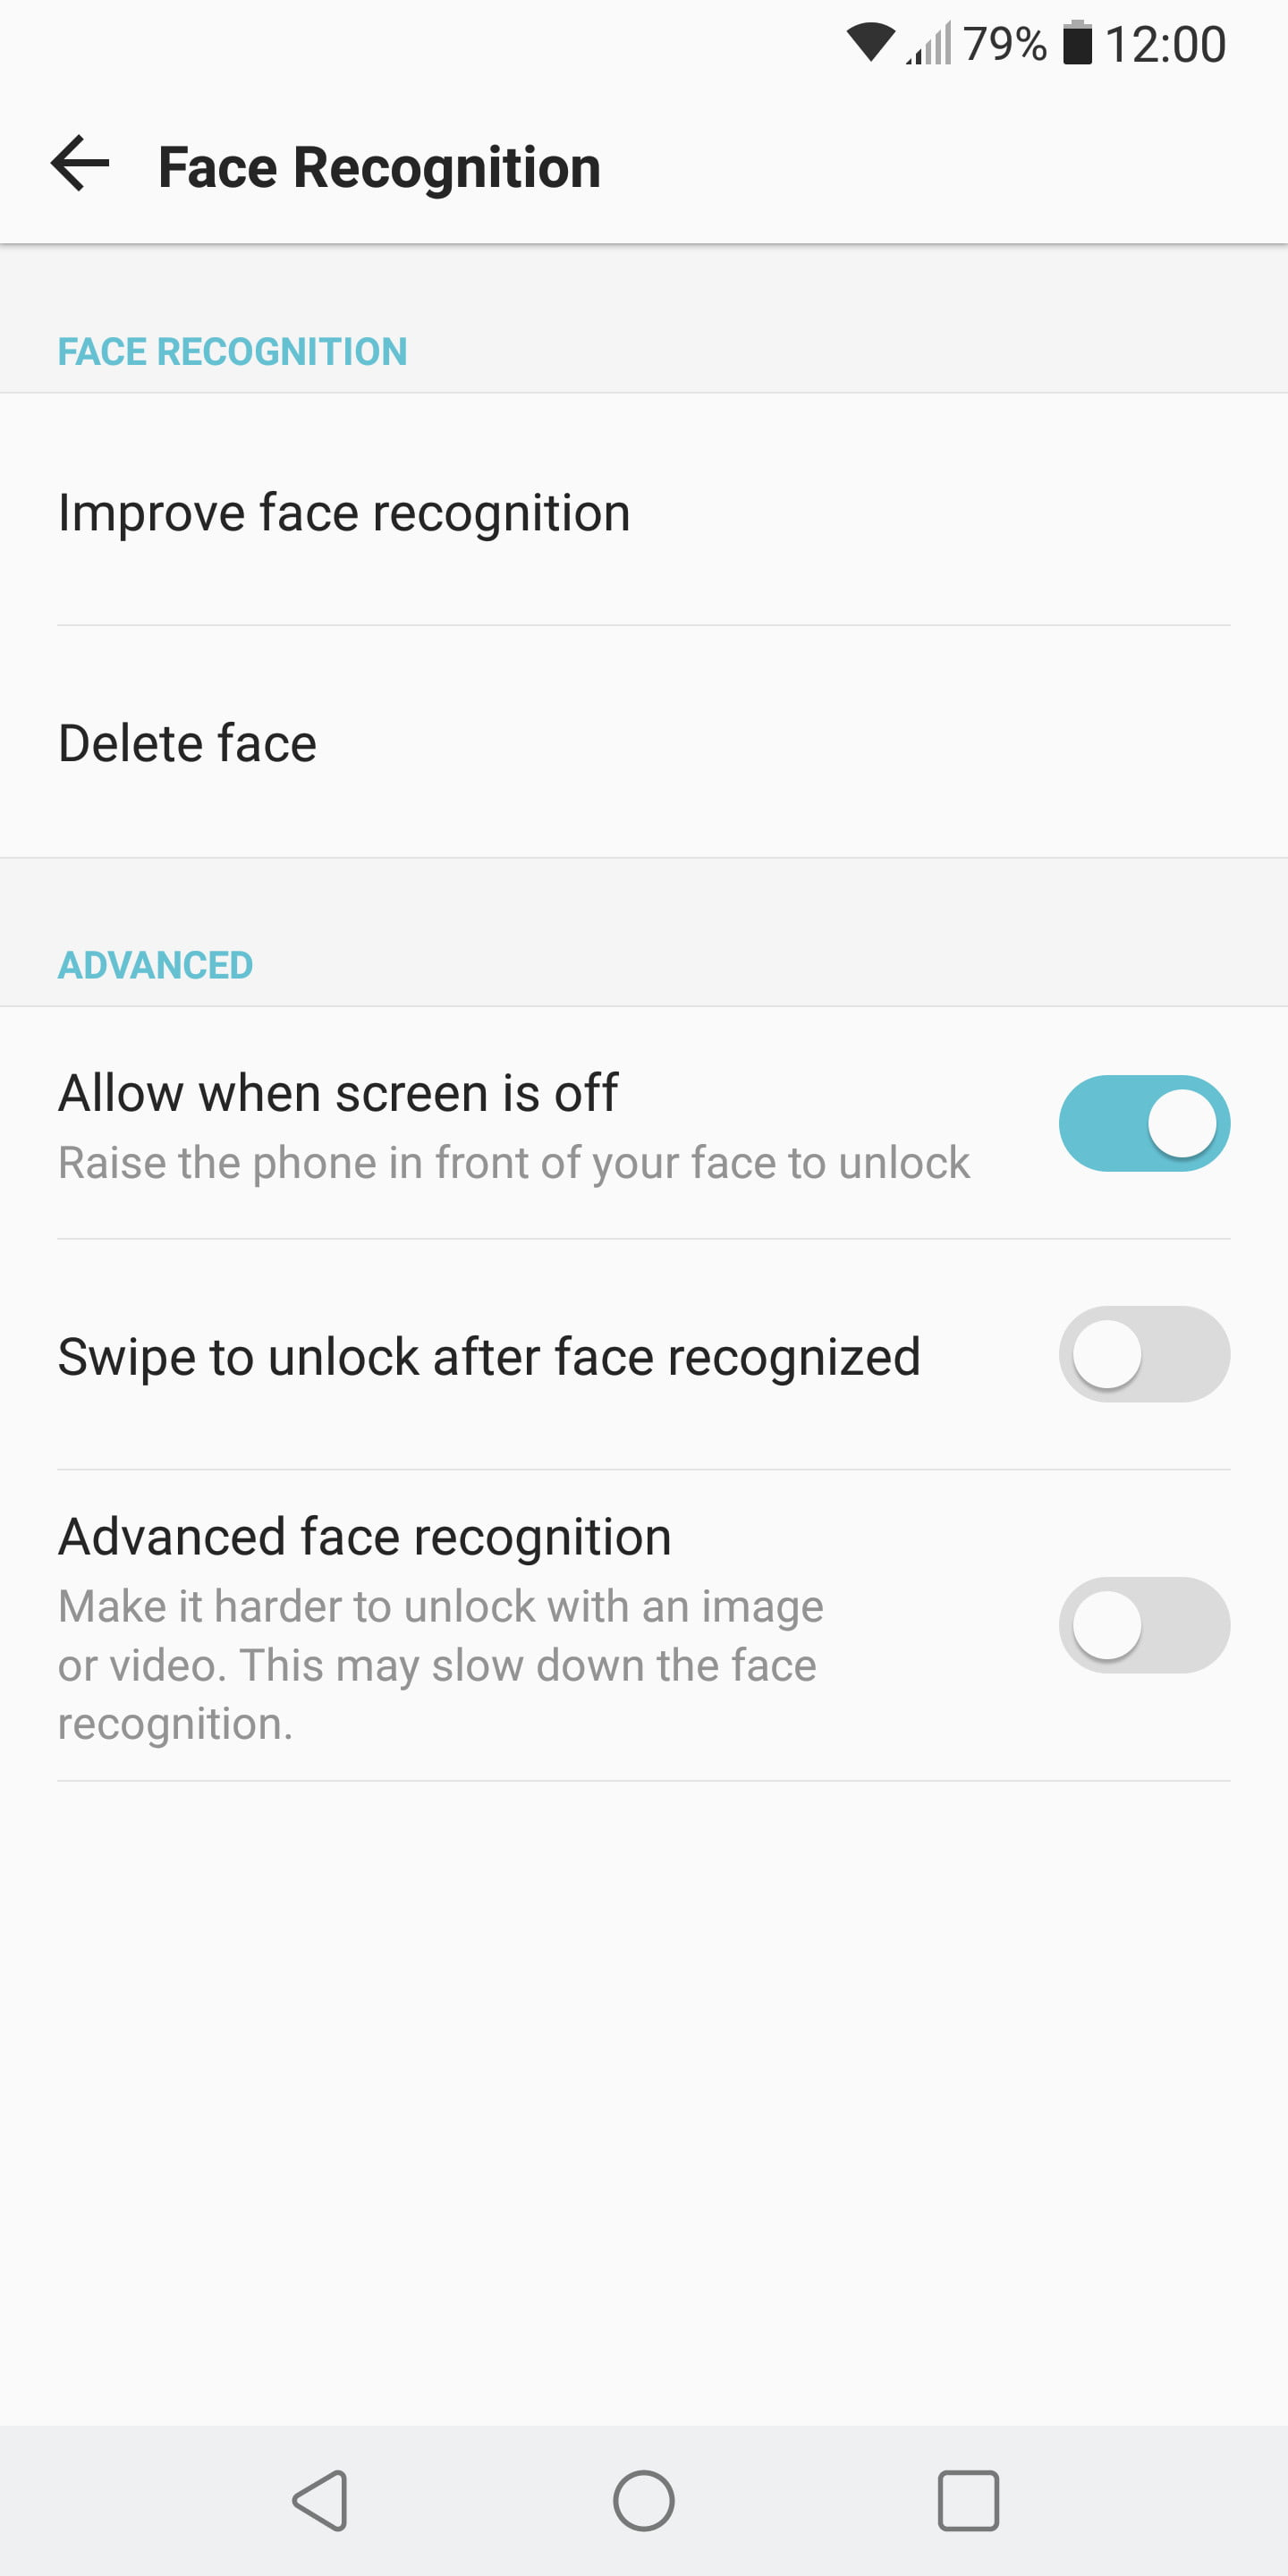 The Best LG V30 Tips and Tricks to Help You Get More from Your Phone